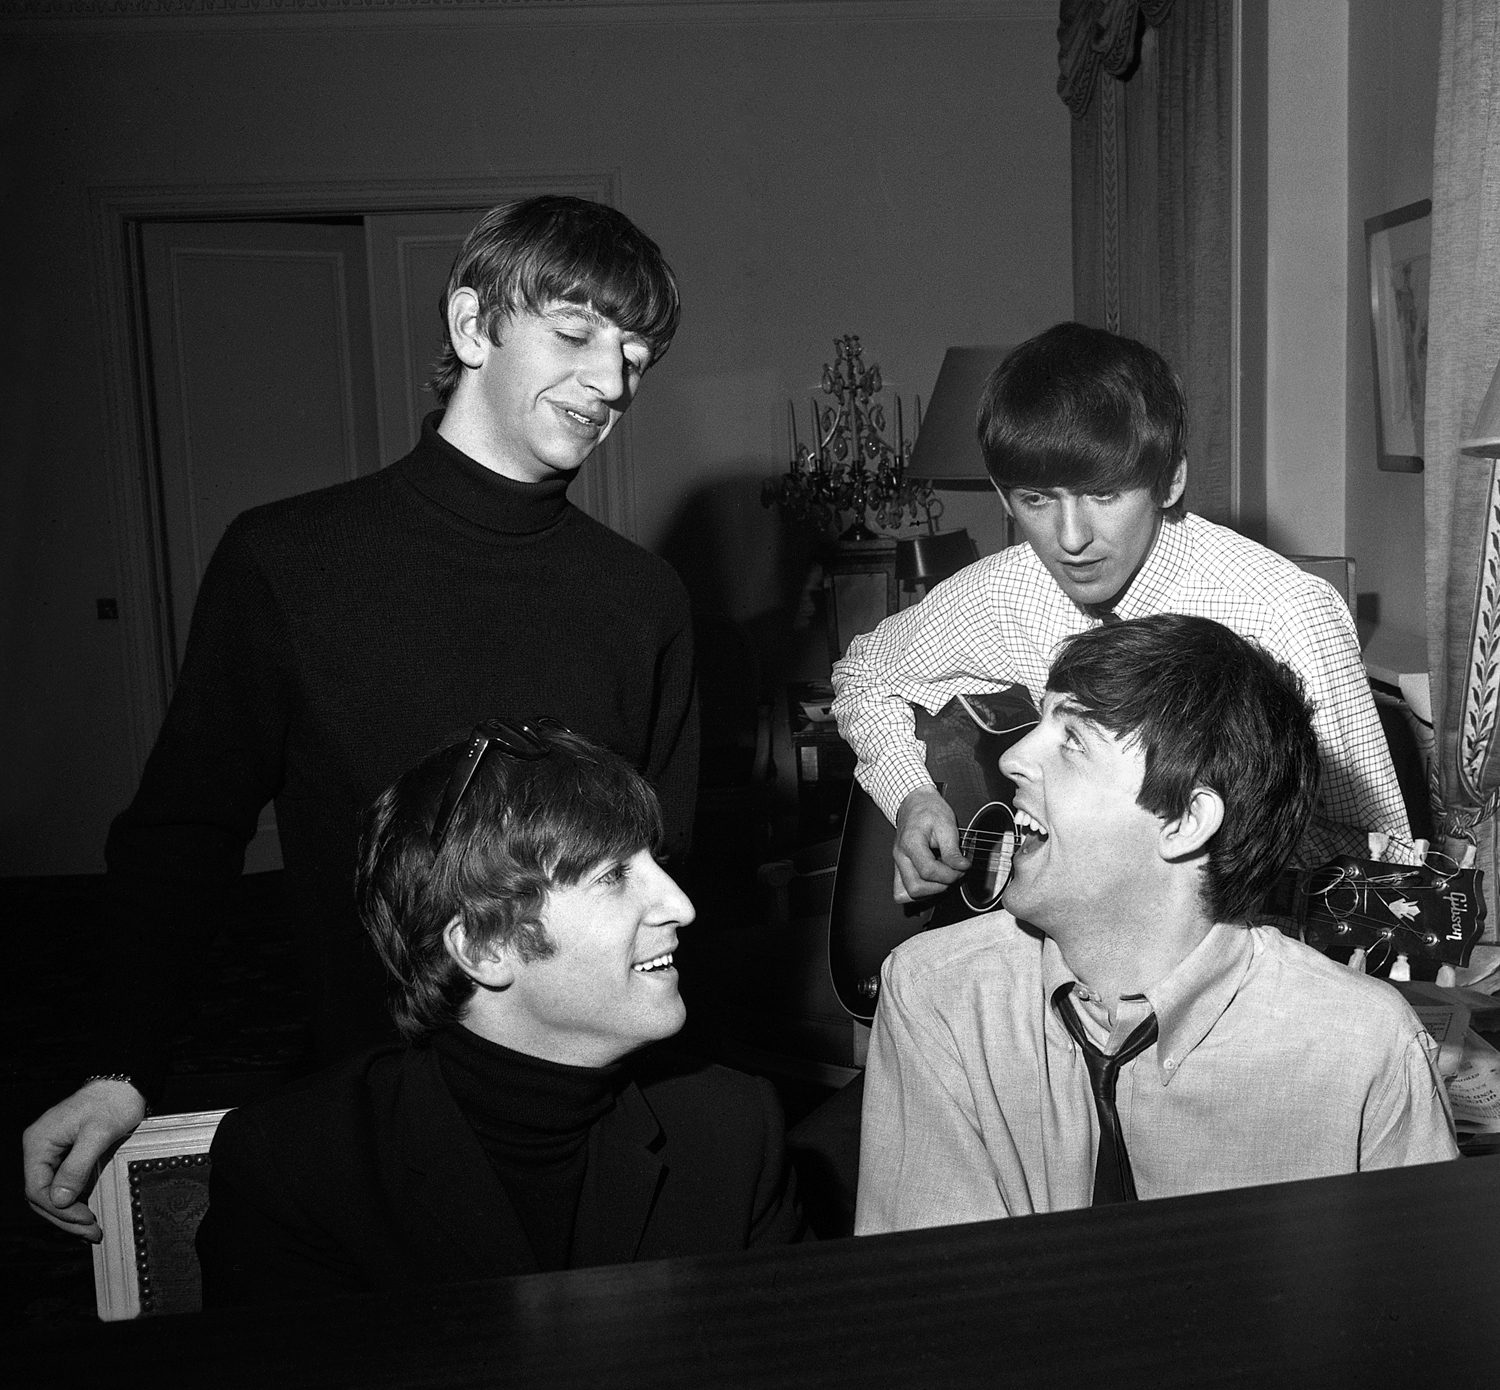 Beatles Composing #2, Paris